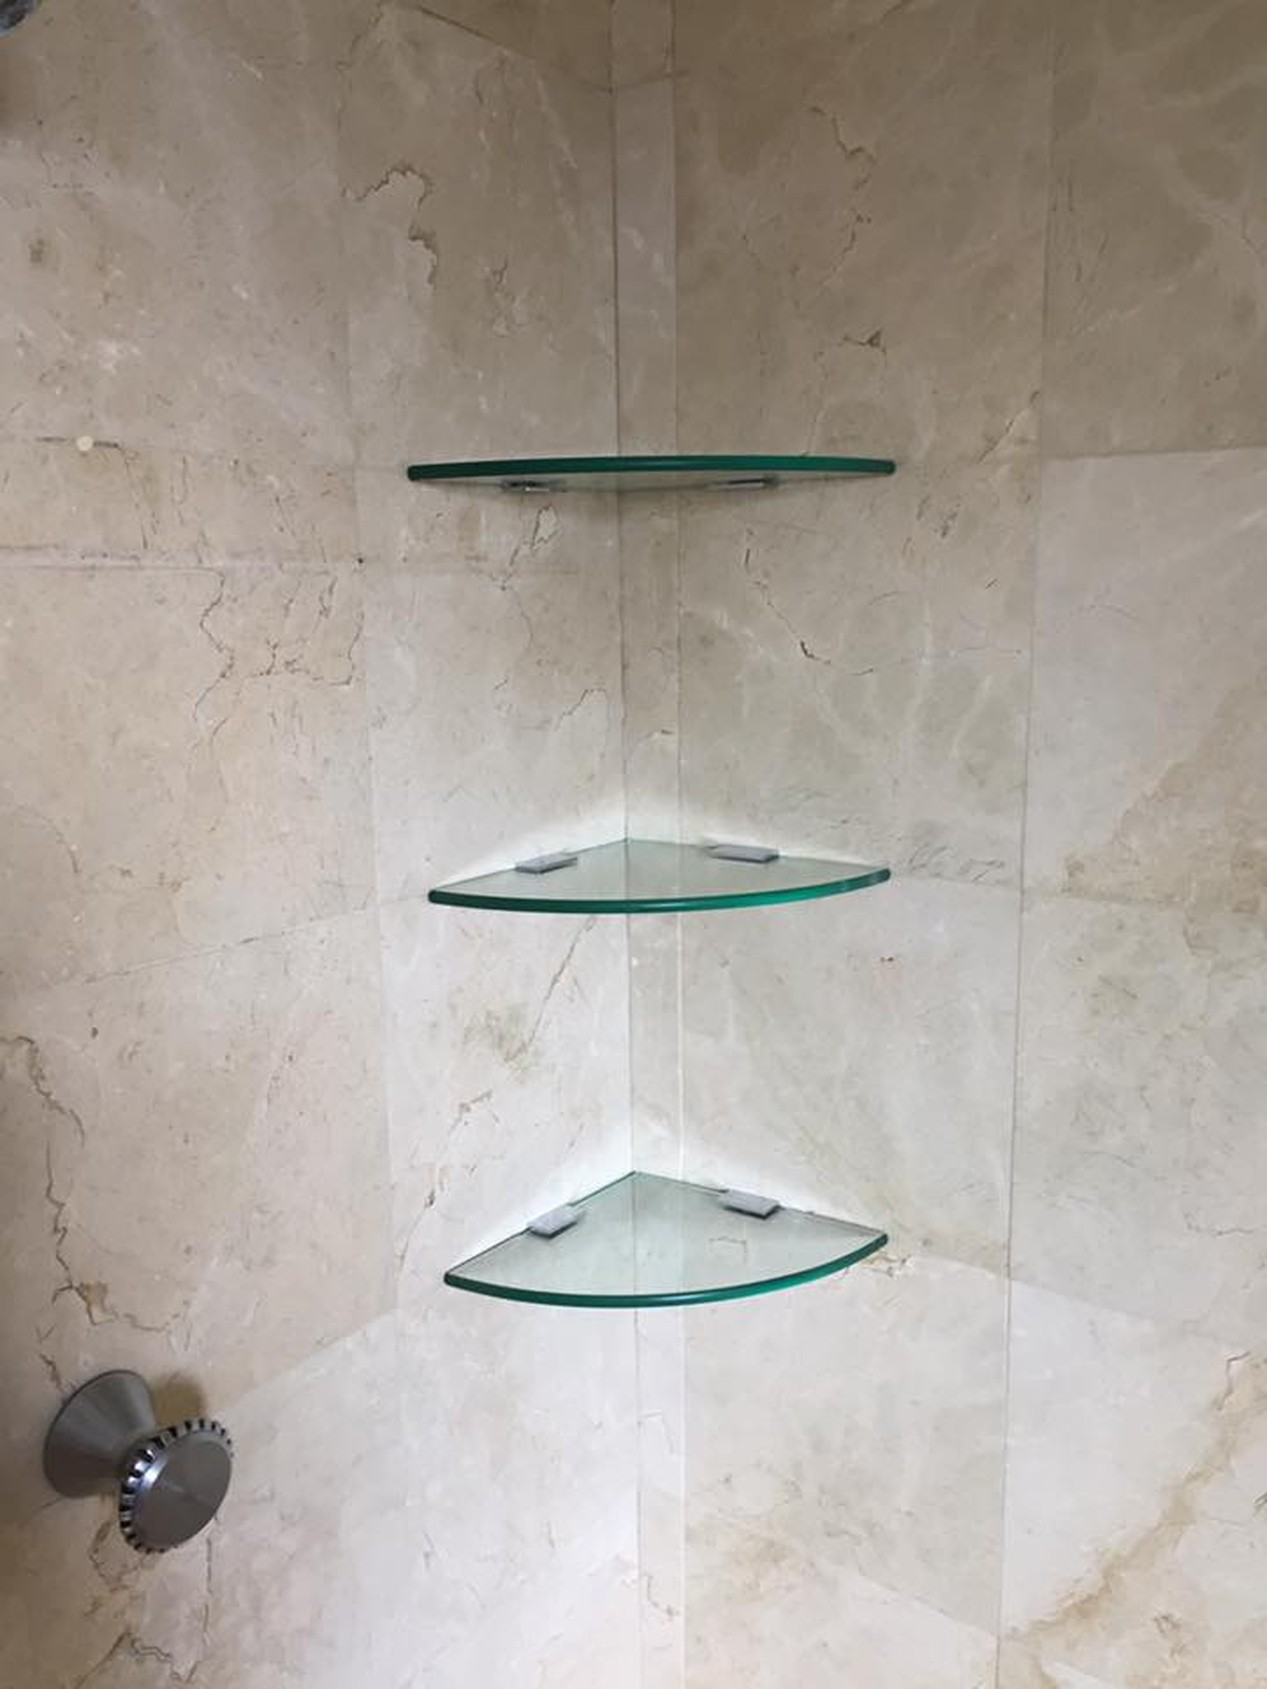 Glass, Doors, Showers, and More! | Glass Design